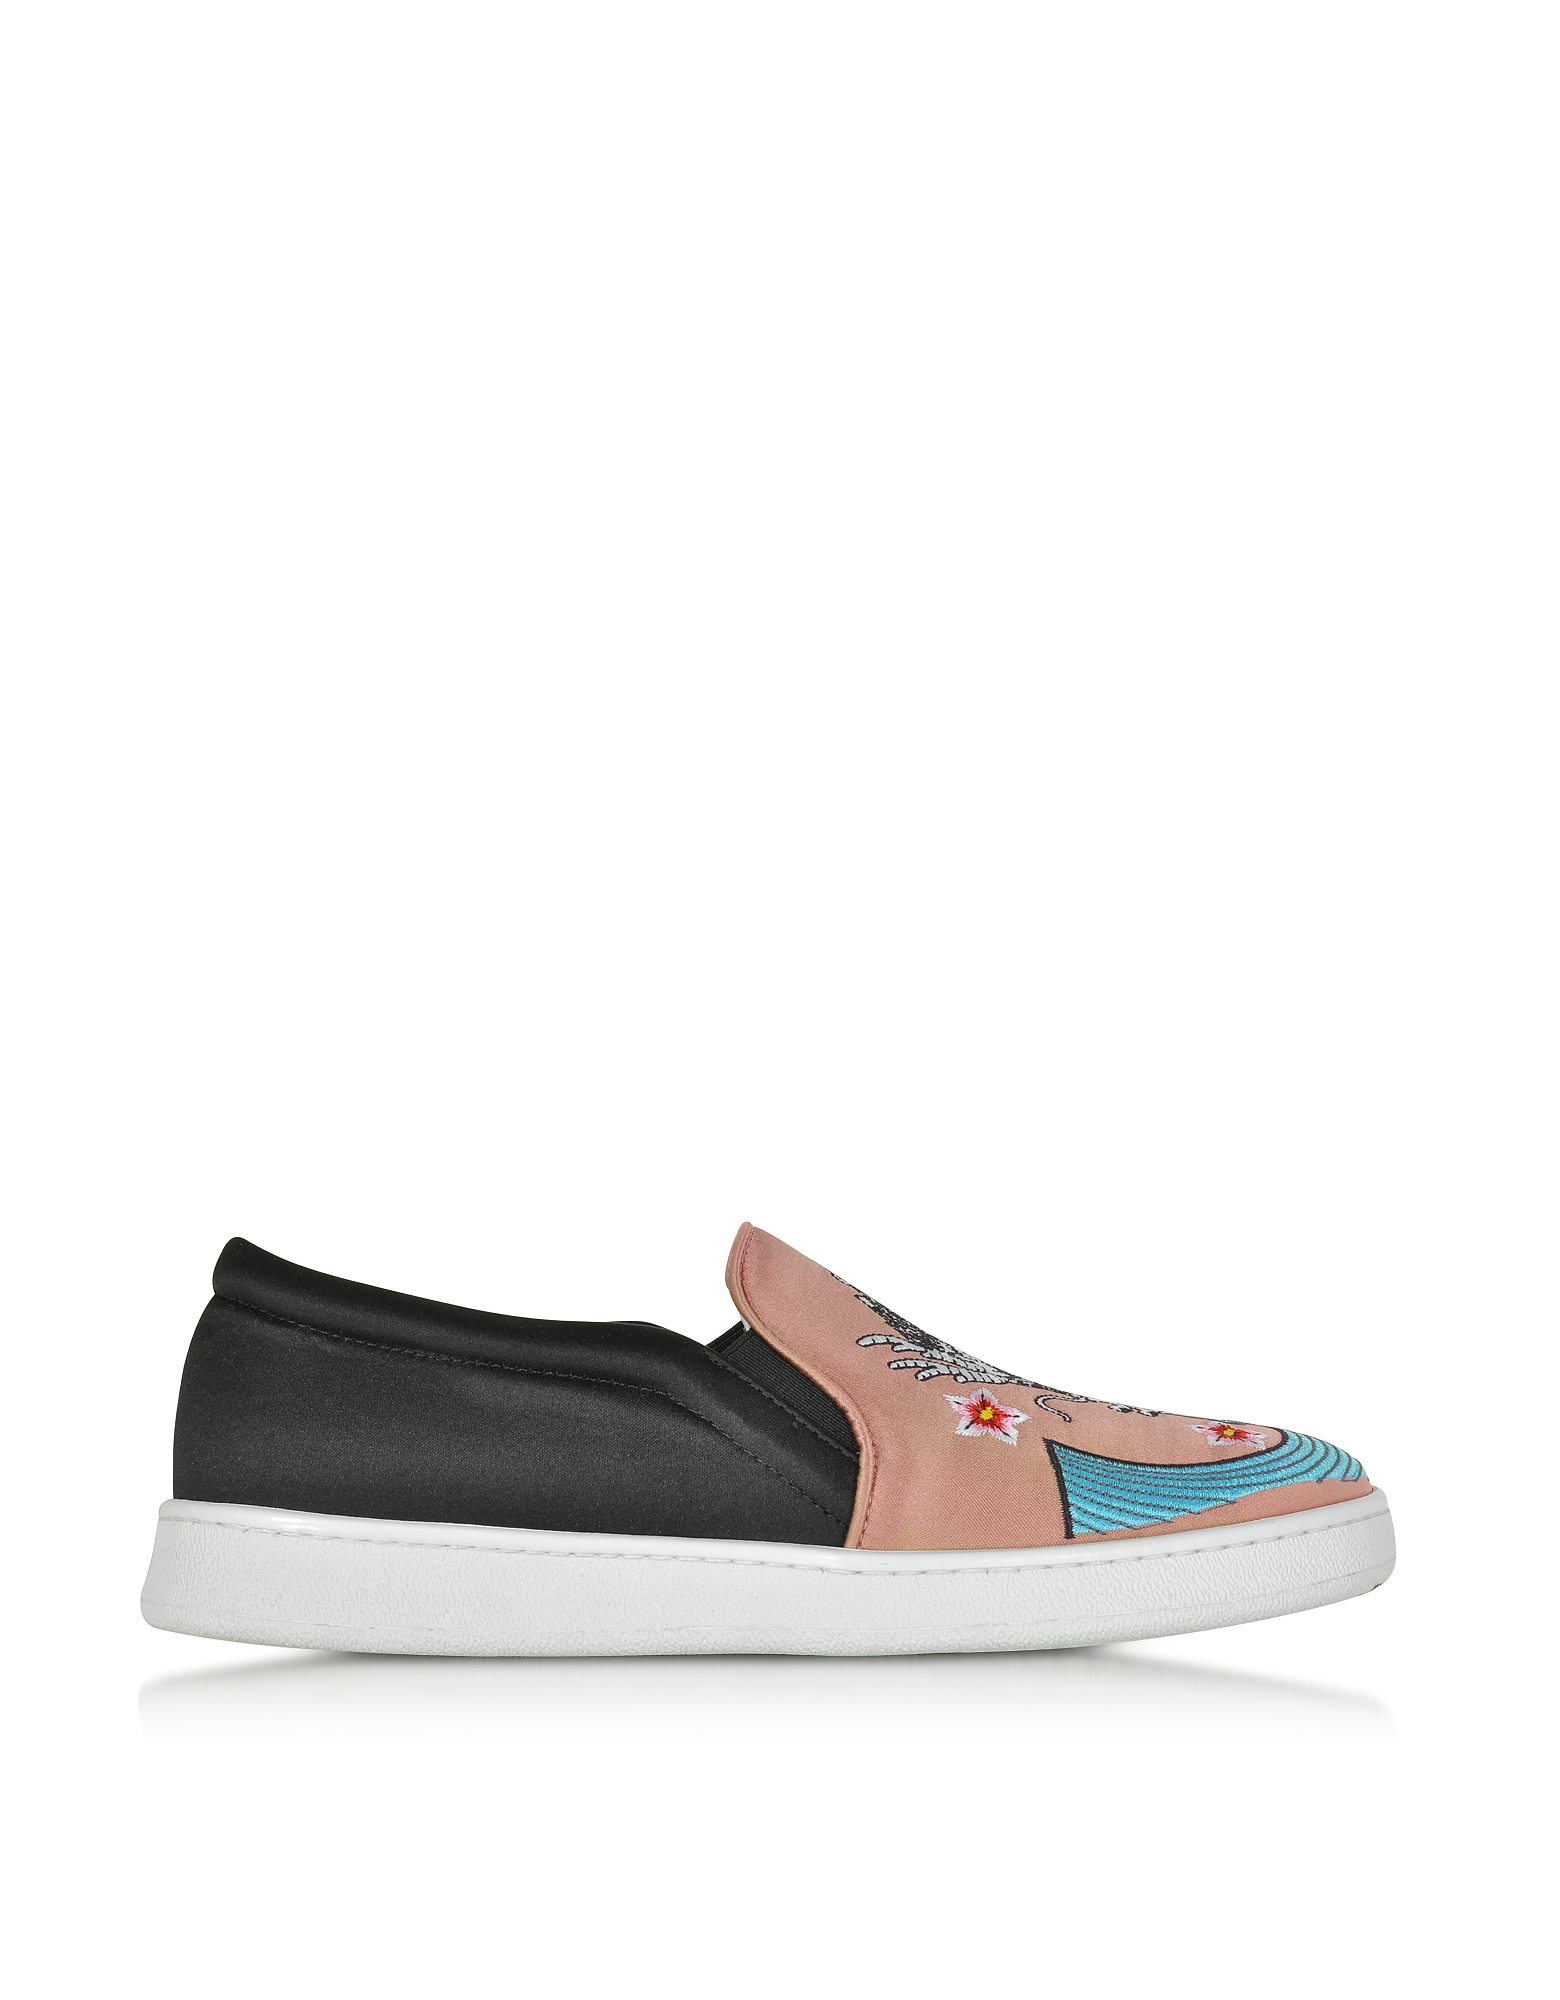 Joshua Sanders Shoes, Dragon Multicolor Fabric Slip-on Sneaker